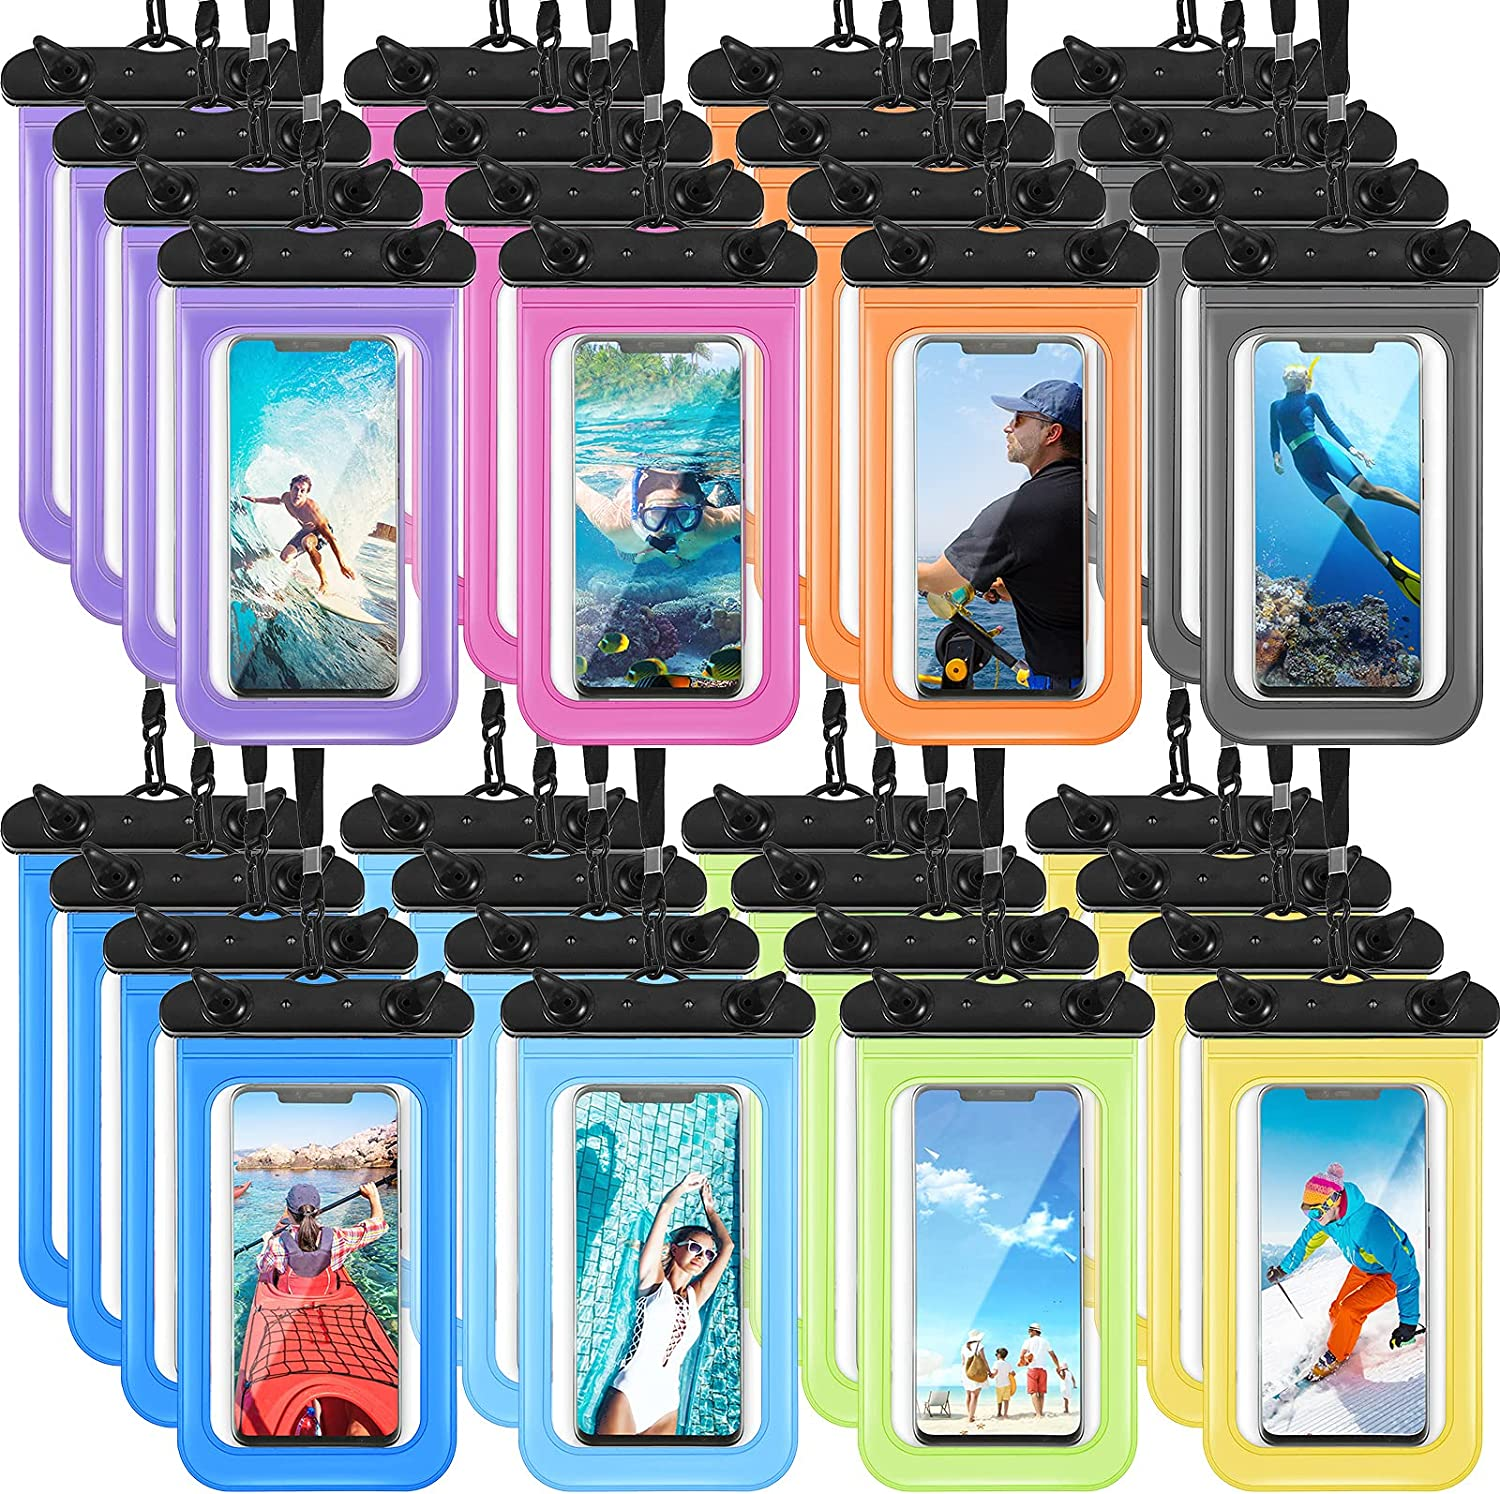 32 Pieces Waterproof Phone Pouch Clear Cellphone Dry Bag with Lanyard Mobile Phone Case for Smartphone up to 6.9 Inch, Multi Color